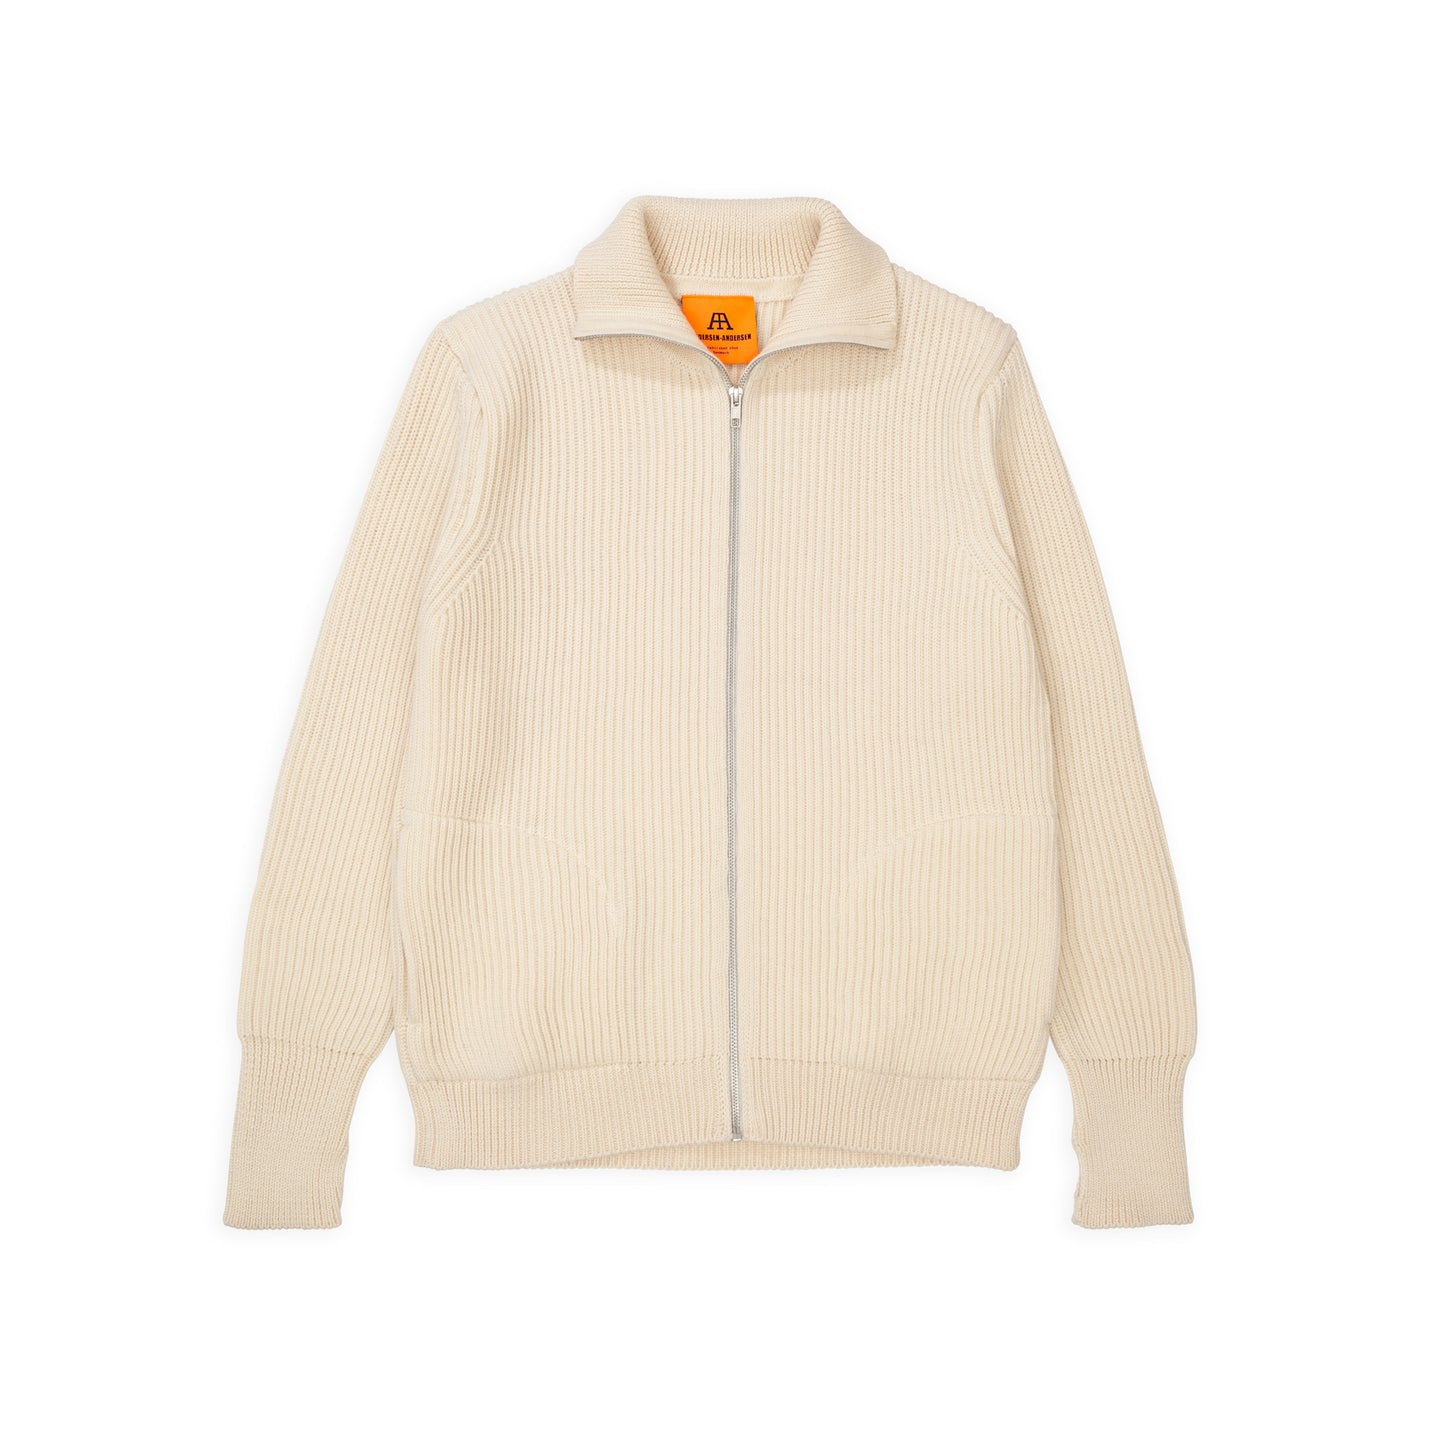 ANDERSEN-ANDERSEN Navy Full Zip pockets - Off White